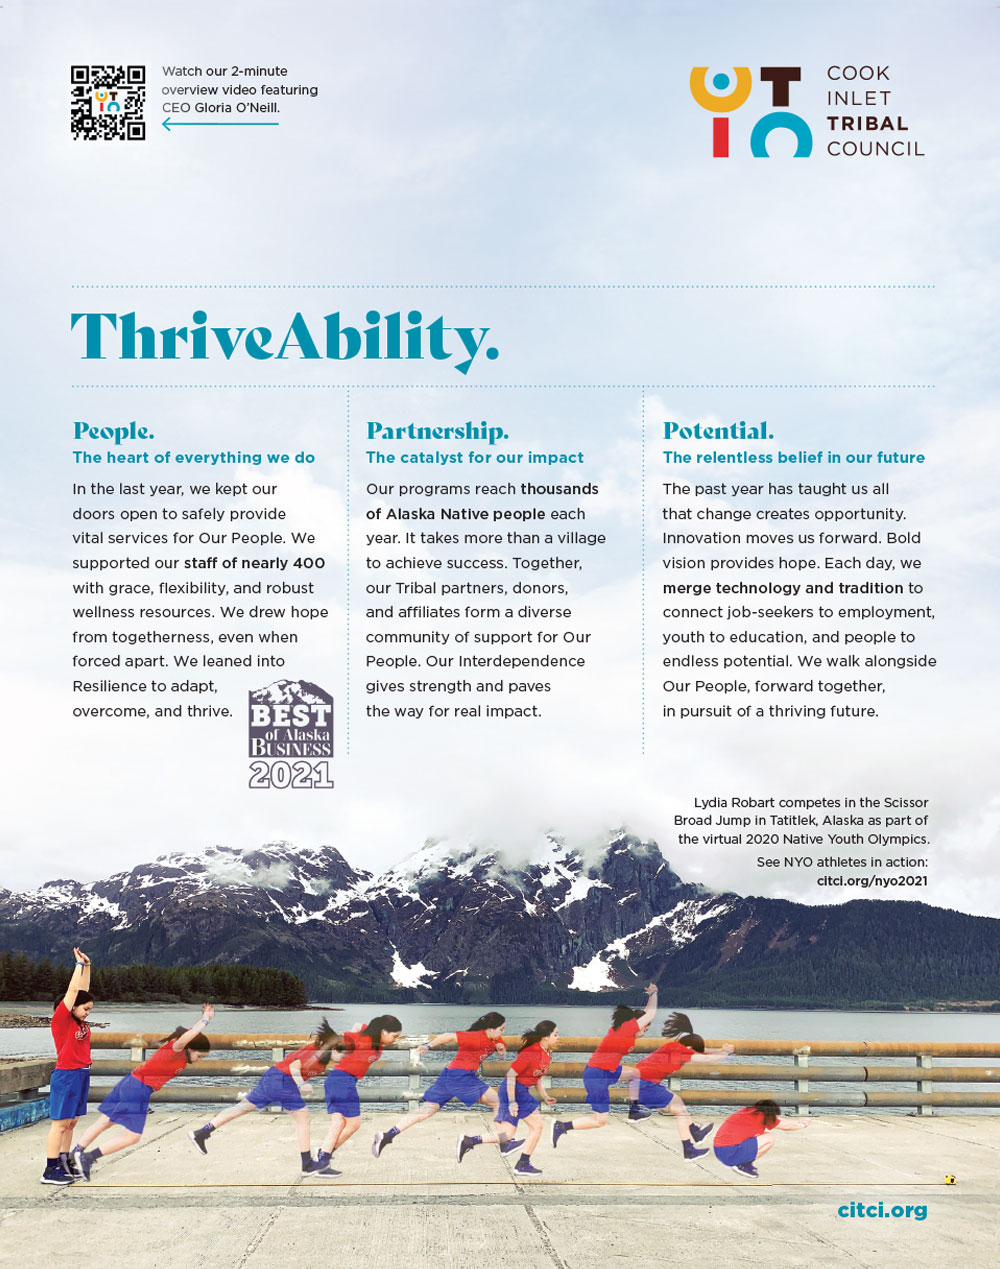 Cook Inlet Tribal Council Advertisement